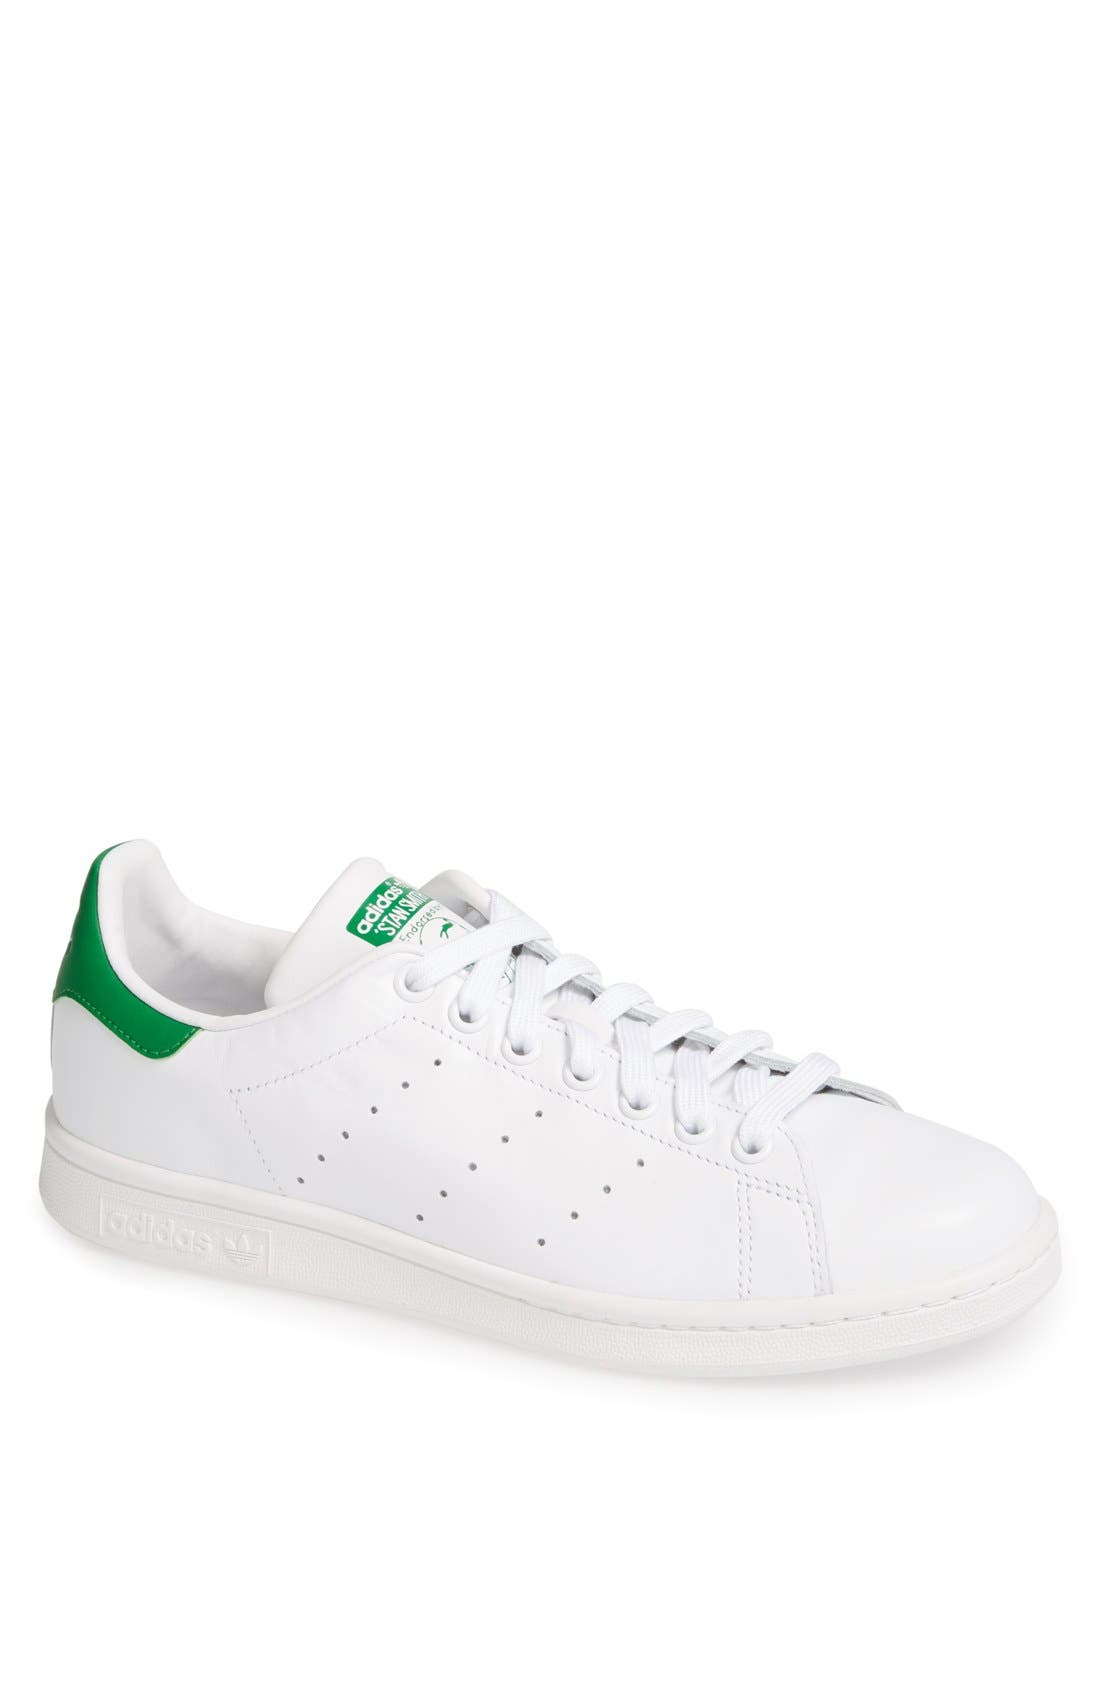 'Stan Smith' Sneaker,                             Main thumbnail 1, color,                             White/ Fairway